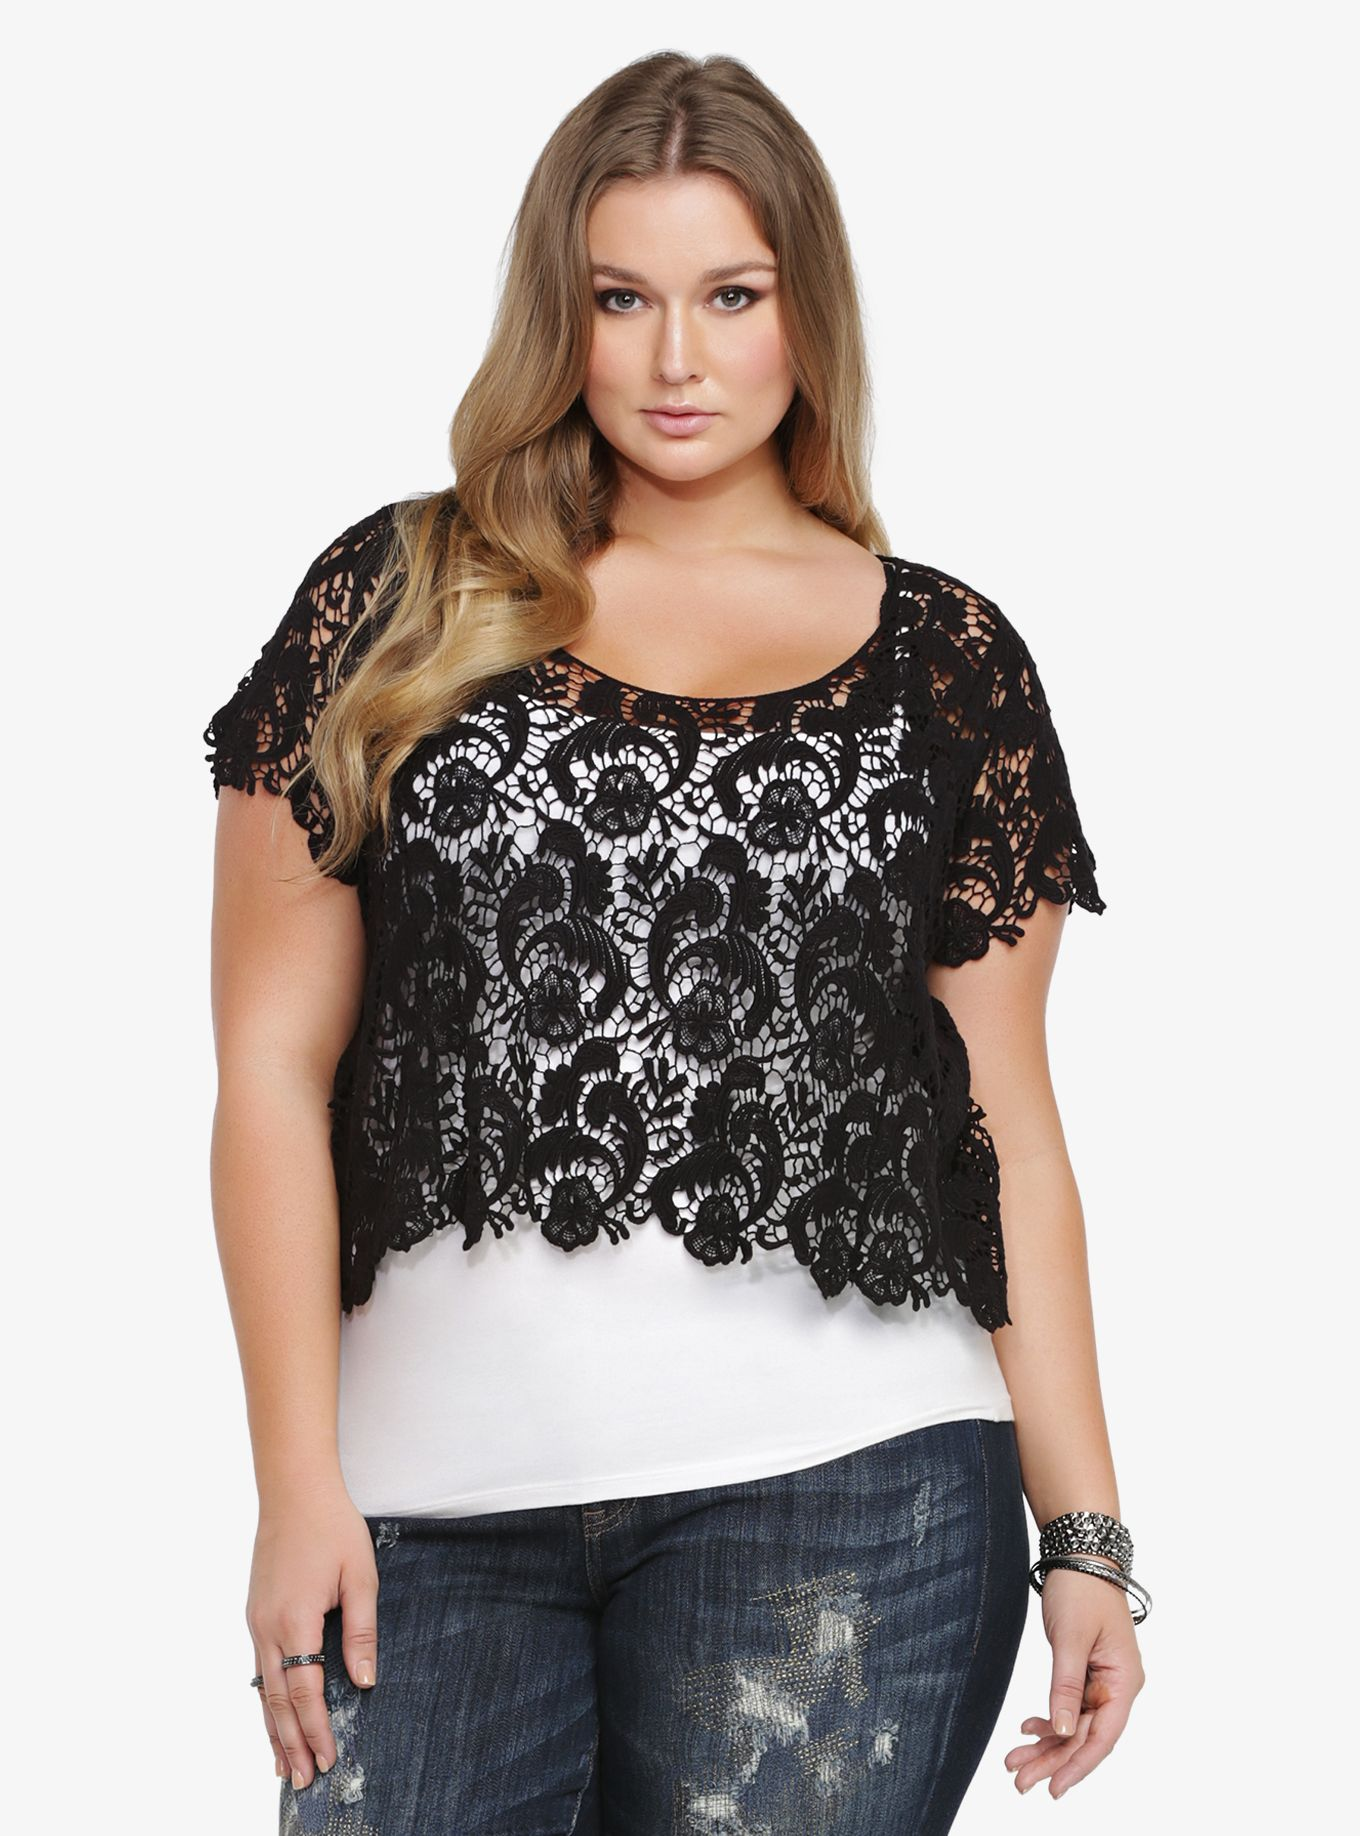 4f1ae1b1b92 Plus Size Clothing for Women. Lace Crop Top